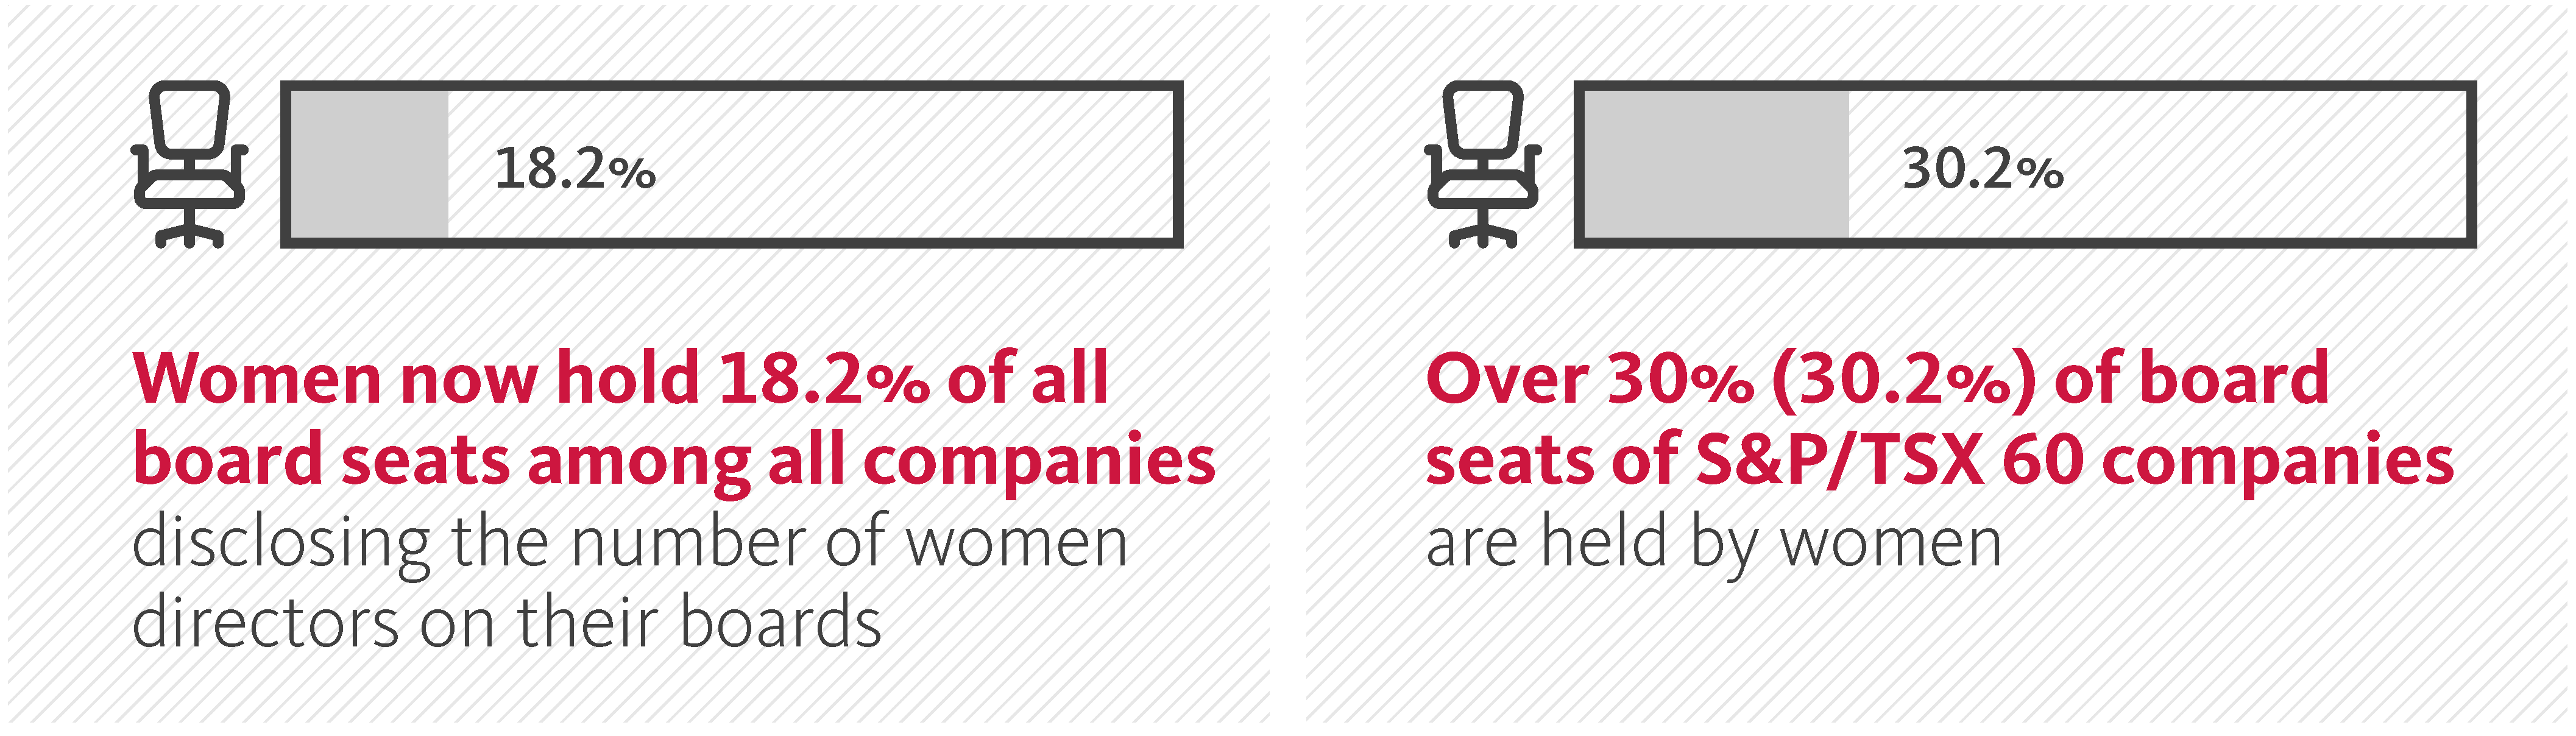 Women now hold 18.2%25 of all board seats among all companies. Over 30%25 of board seats of S&P/TSX 60 companies.